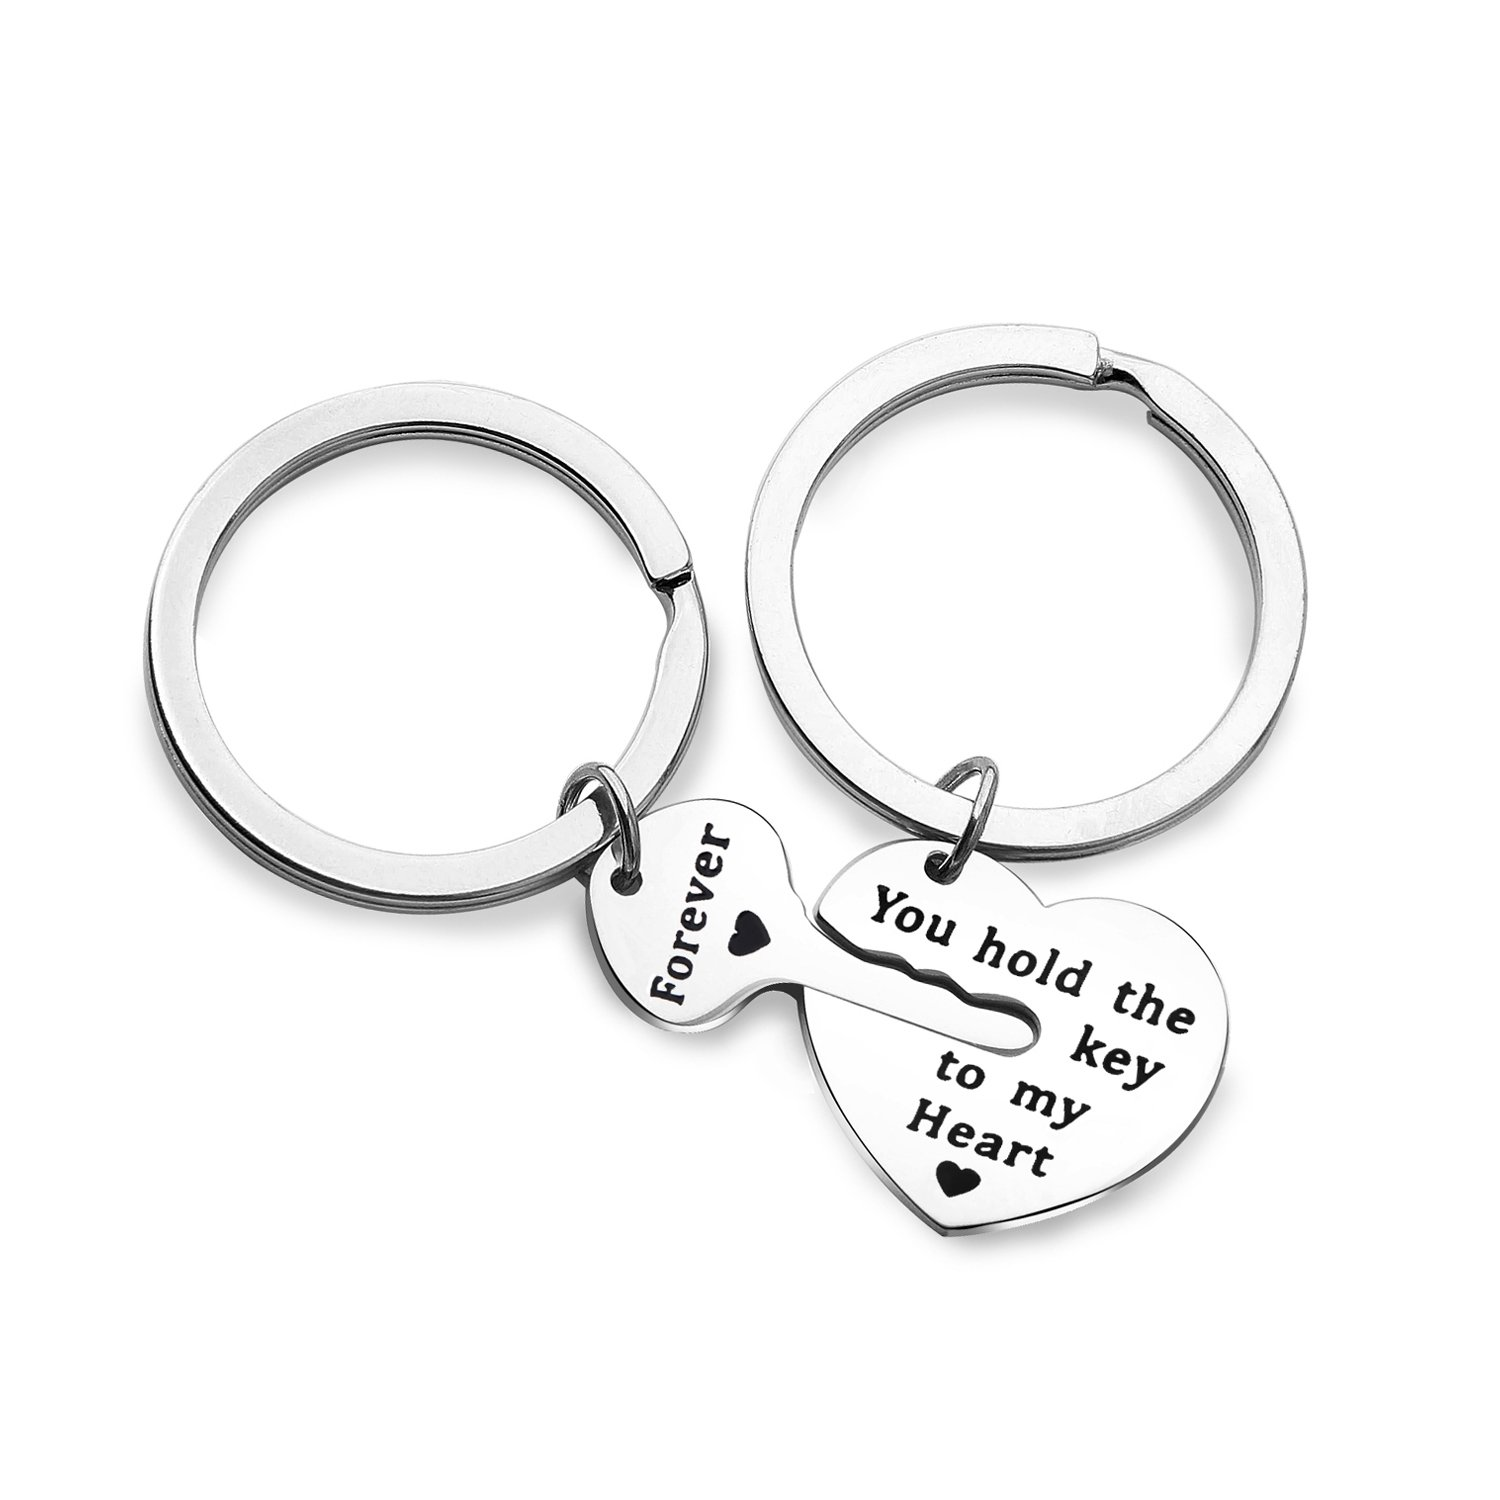 Couples Keychain Set You Hold the Key to My Heart Forever Jewelry for BBF (key to heart set)